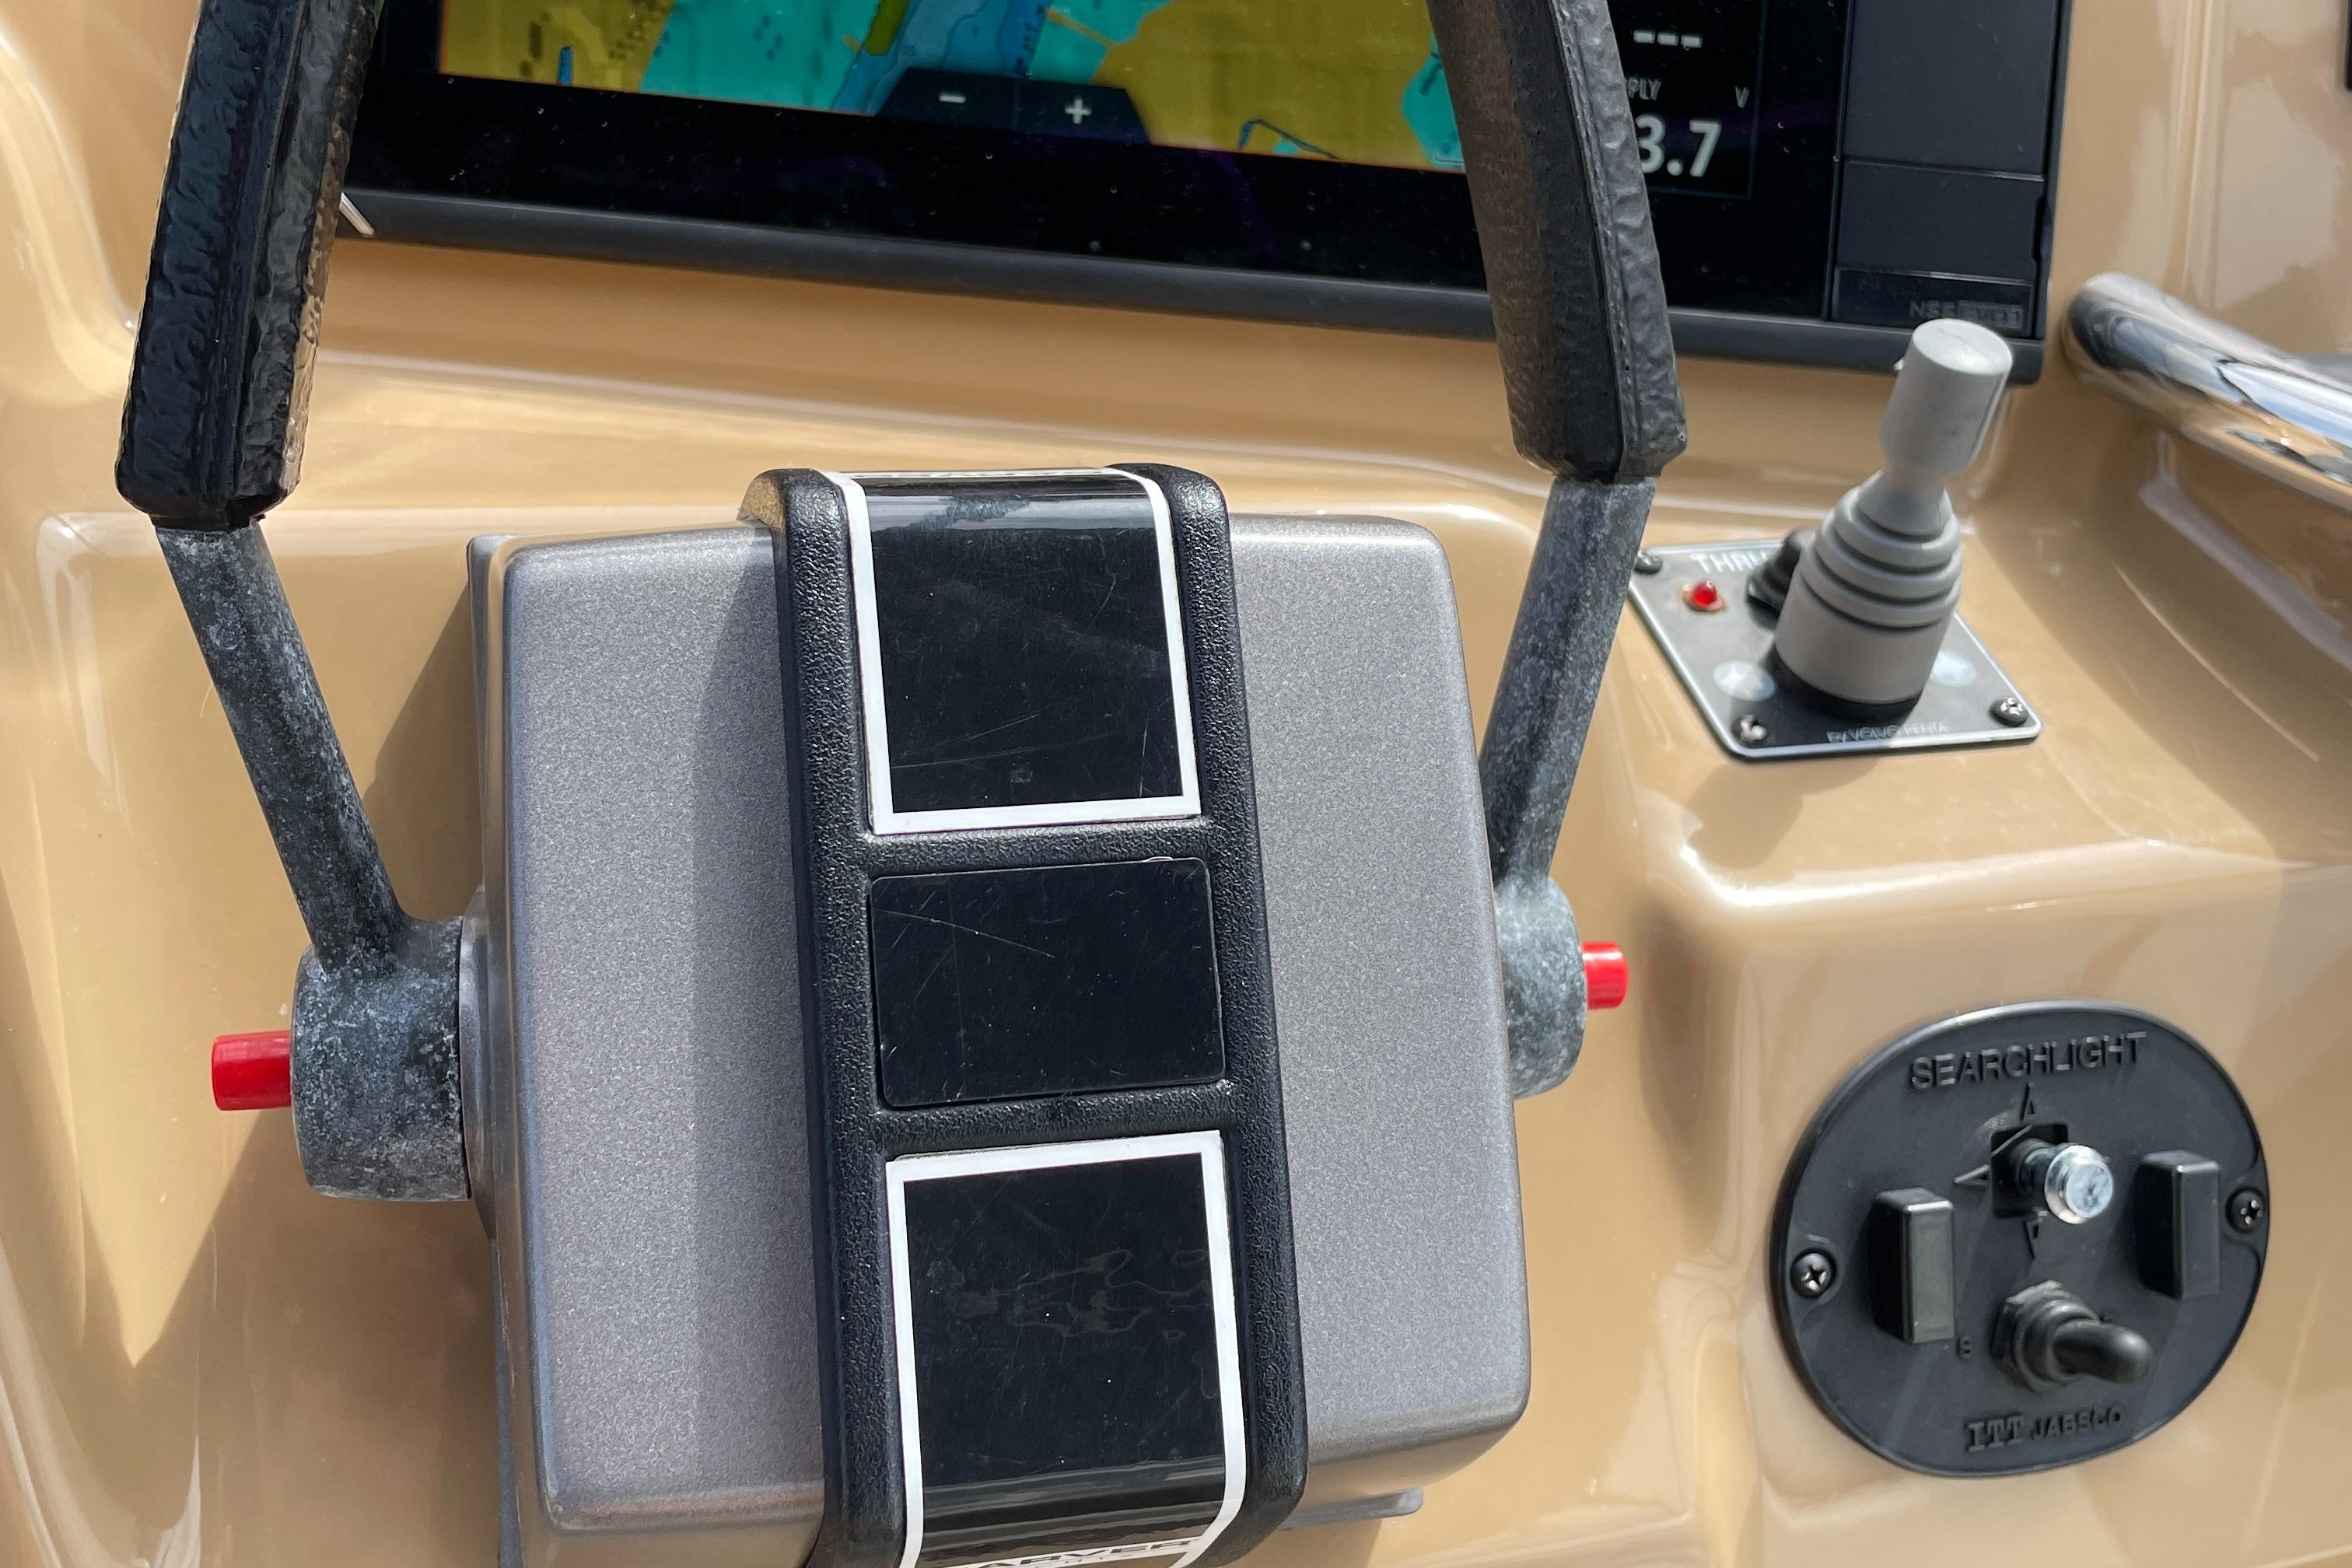 Carver 444 Cockpit Motor Yacht - Electronic Engine Controls/Bow Thruster/Remote Spotlight Control